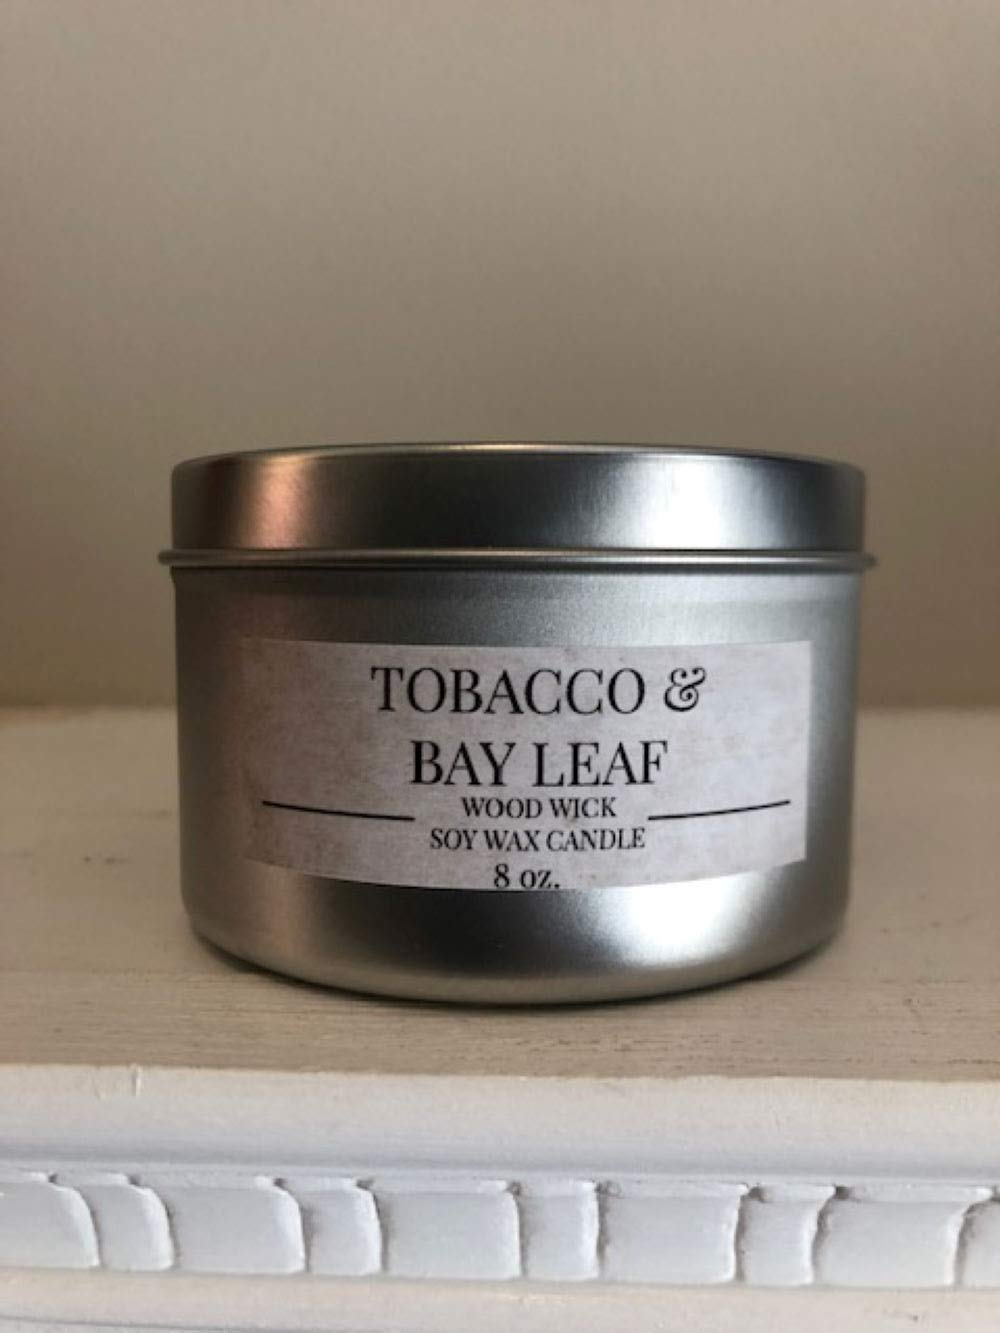 "TOBACCO & BAY LEAF Wood Wick Soy Wax Candle 8 oz.""Relax to the soft crackle of burning wood"""